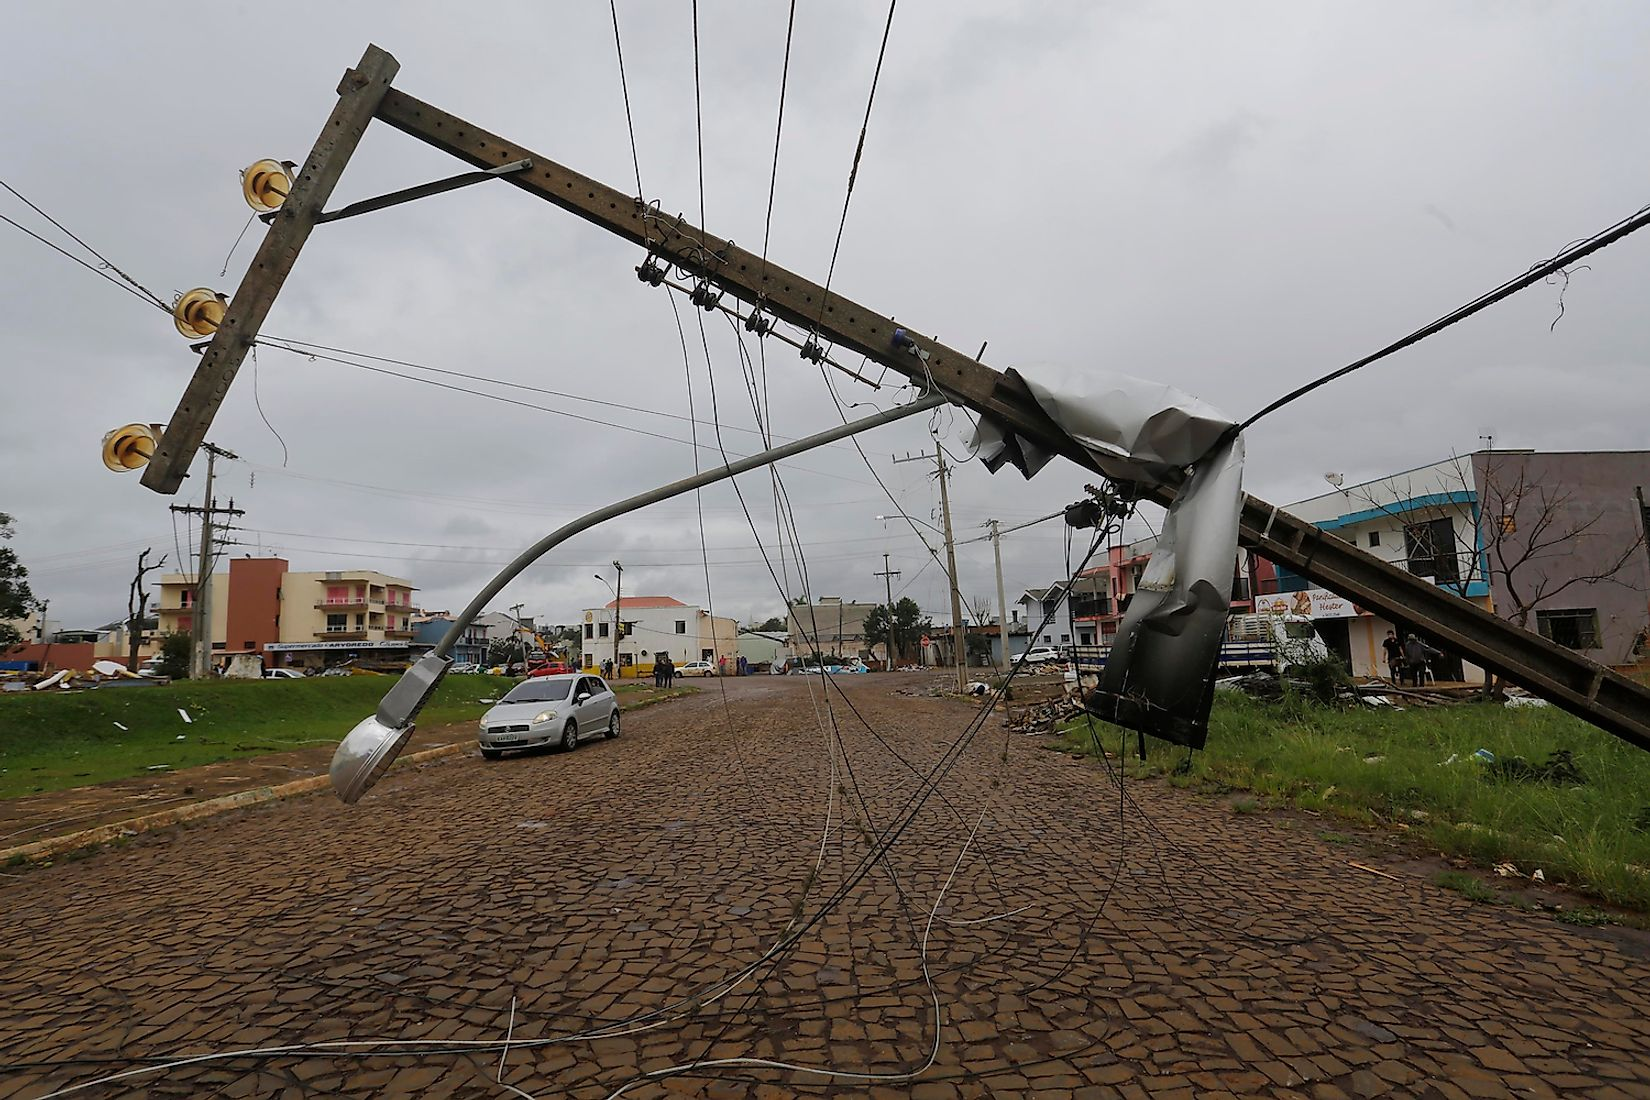 Xanxere, SC / Brazil - April 22, 2015: Power line is down after get destroyed by a tornado in Santa Catarina state killing two people and leaving hundreds homeless. Image credit: Nelson Antoine/Shutterstock.com